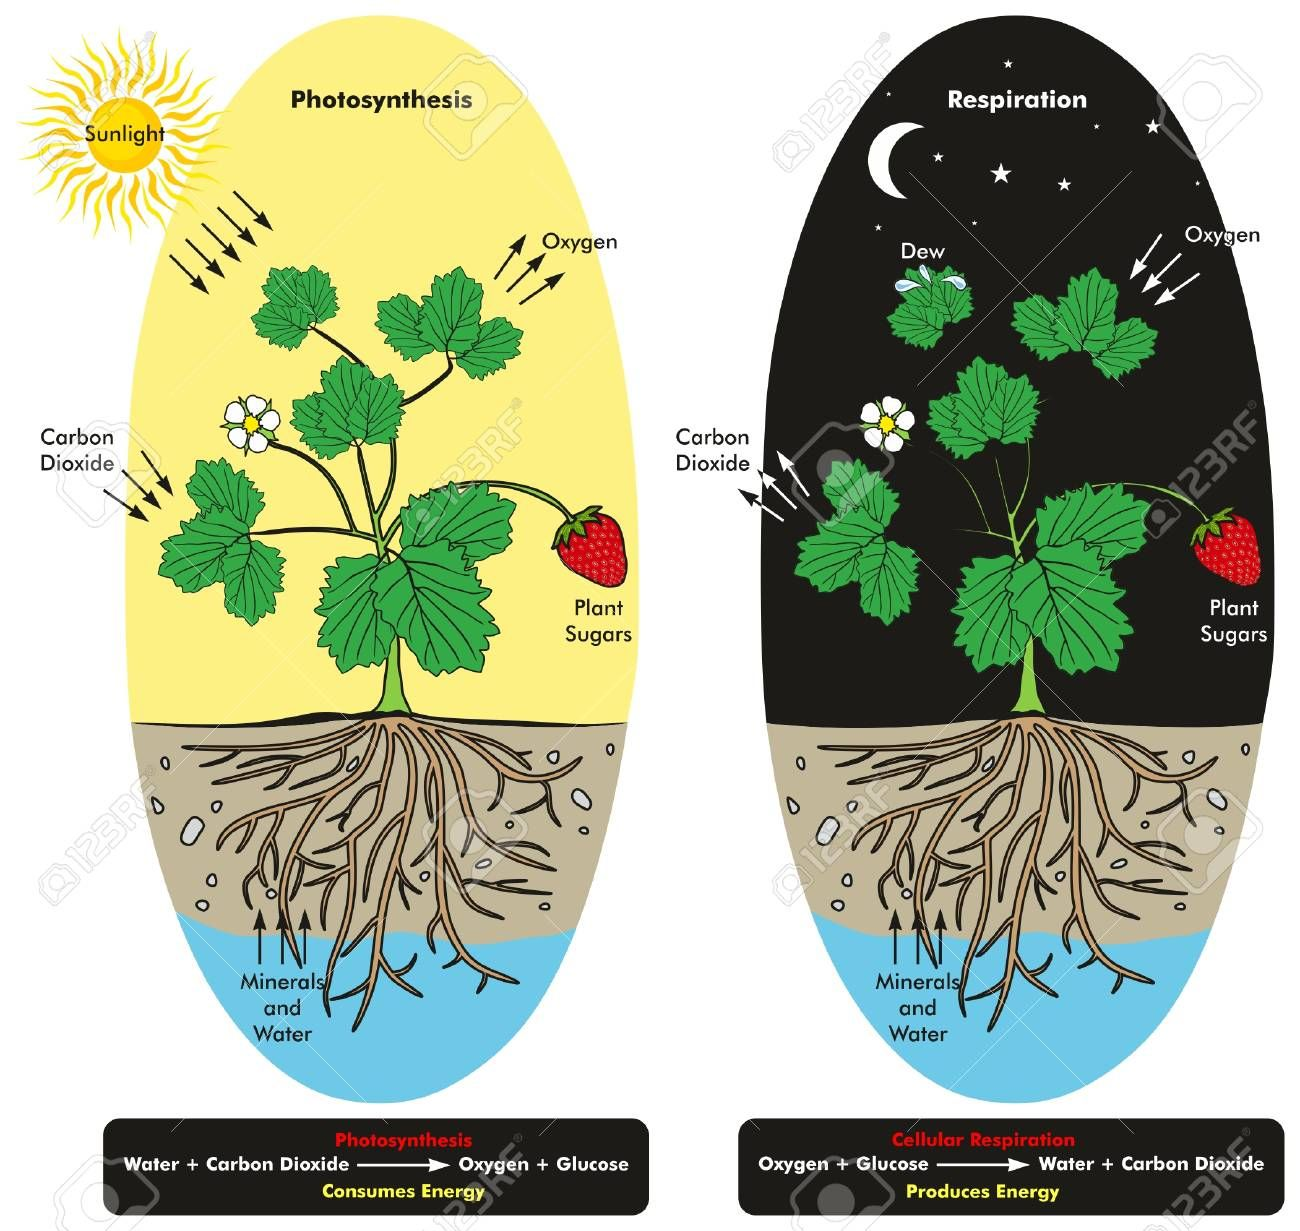 Photosynthesis and Cellular Respiration Process of Plant